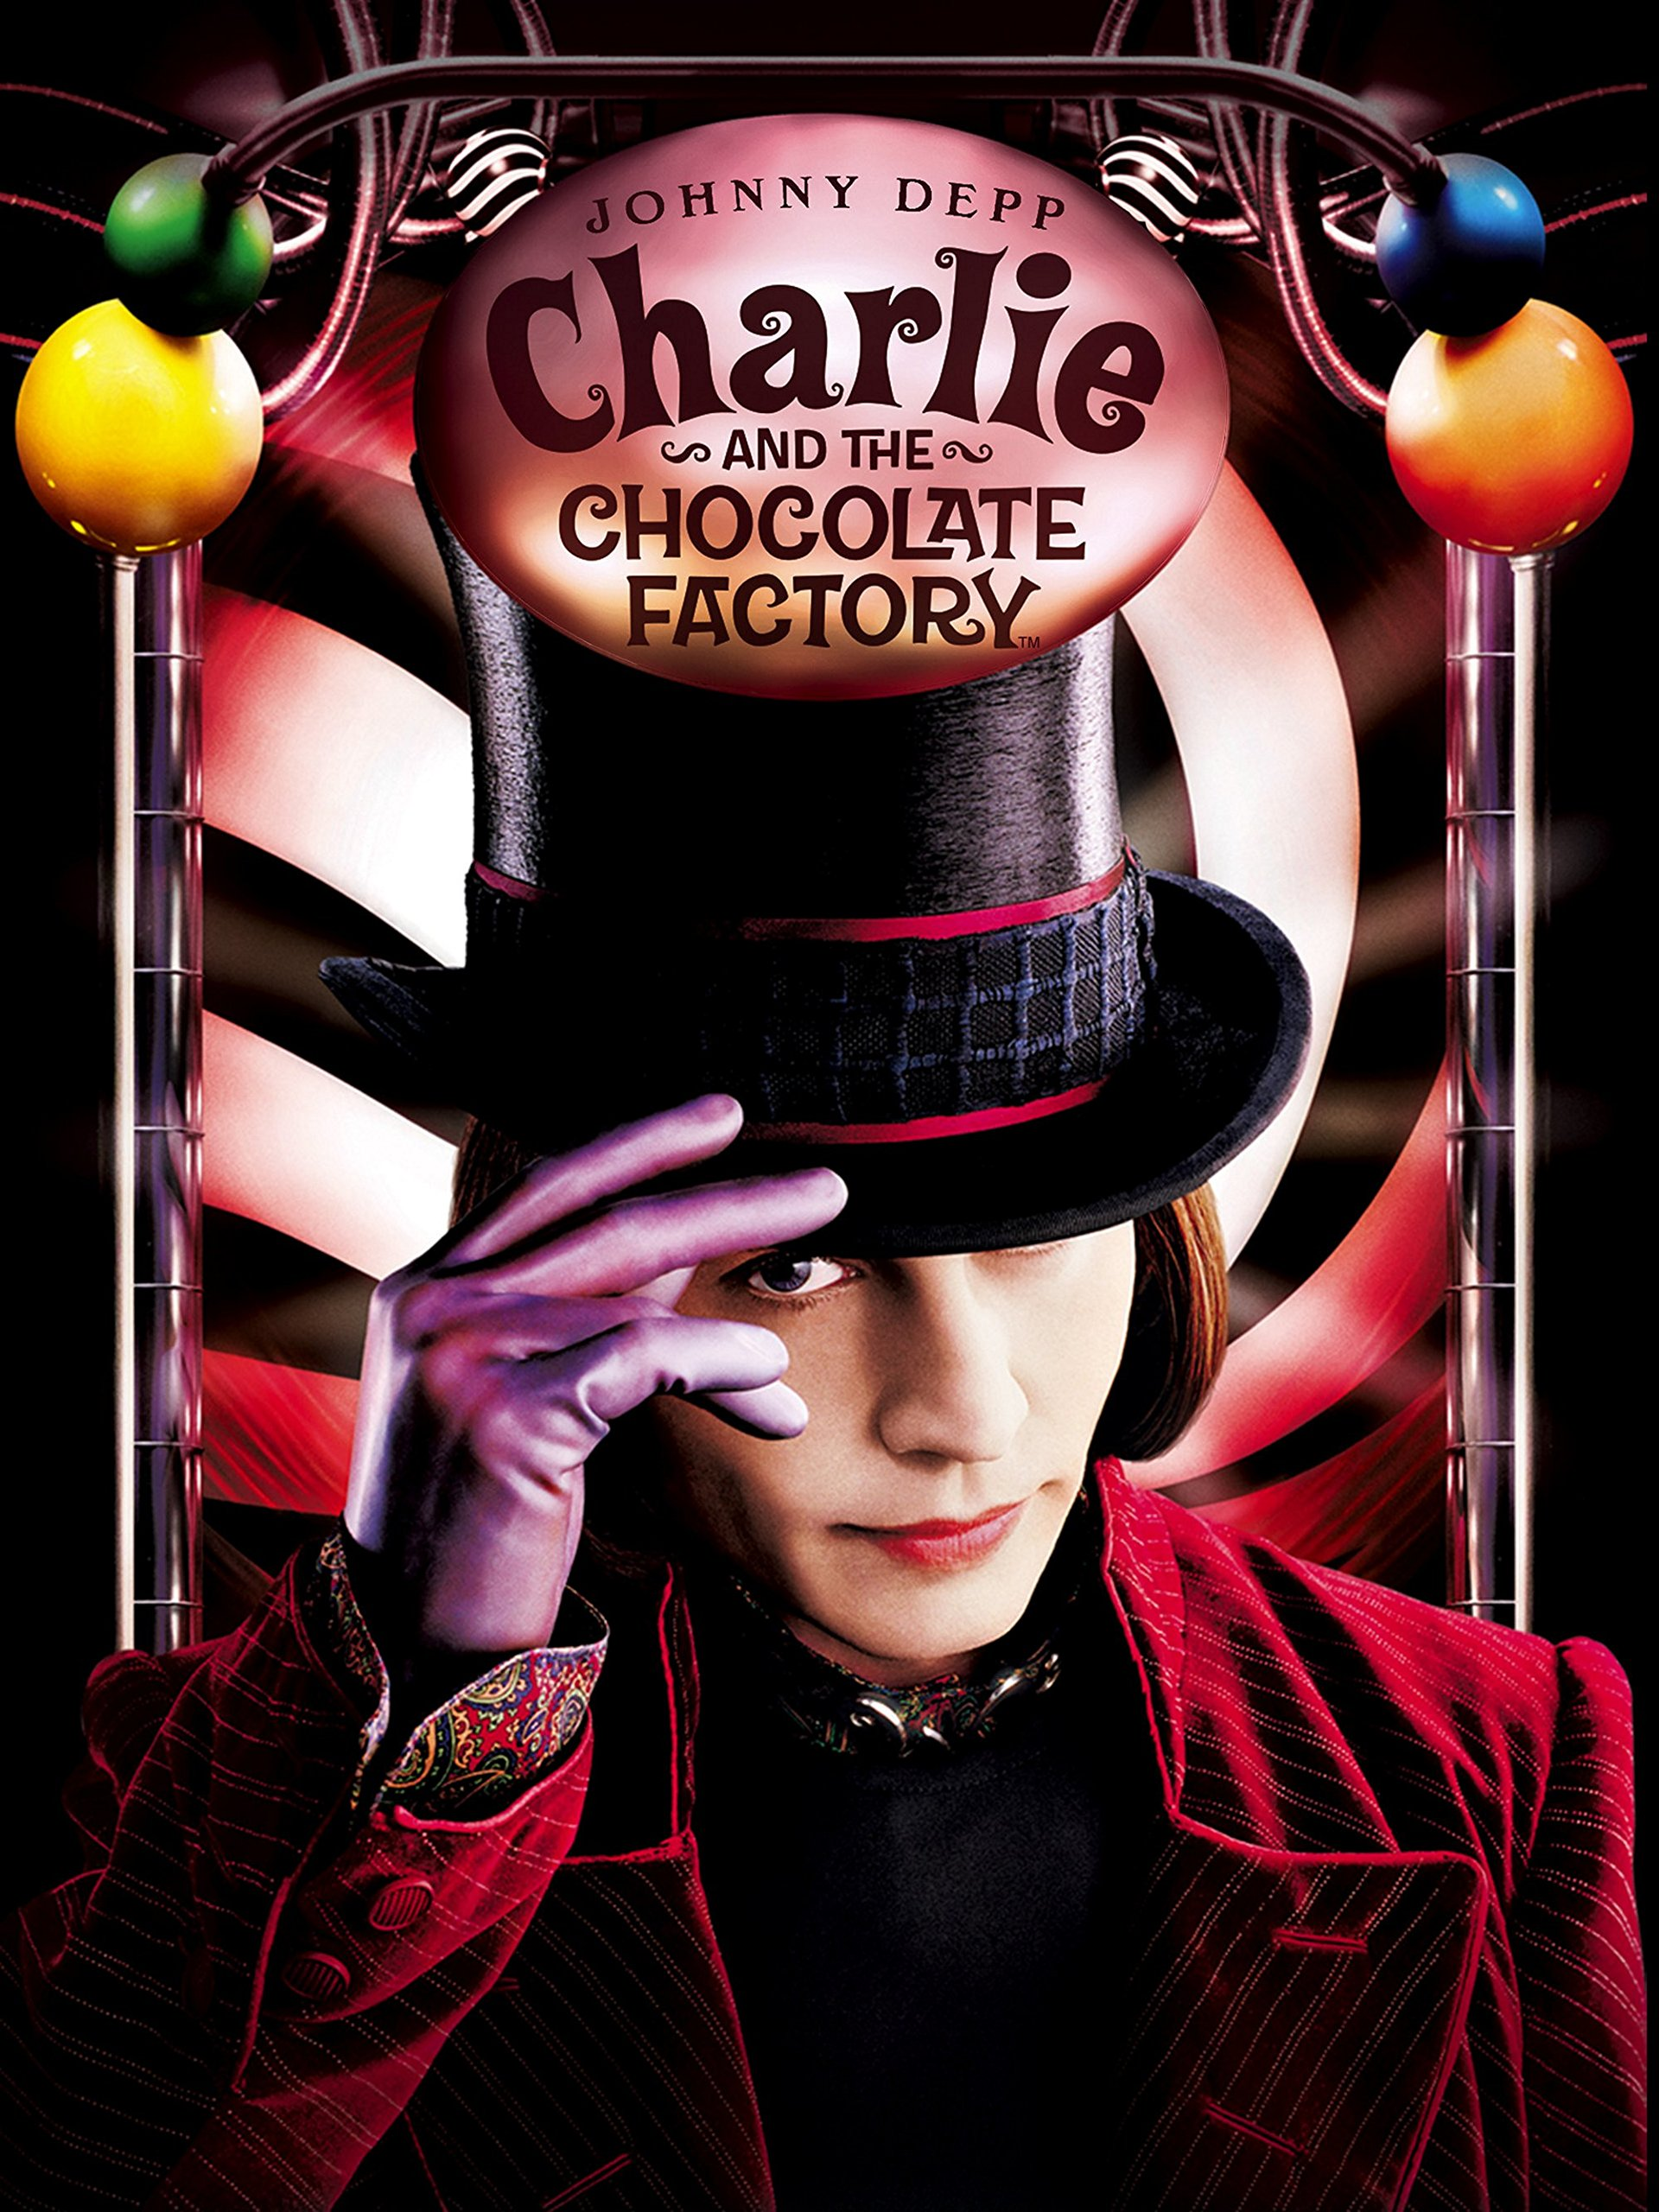 Amazon.com: Charlie and the Chocolate Factory: Johnny Depp ...